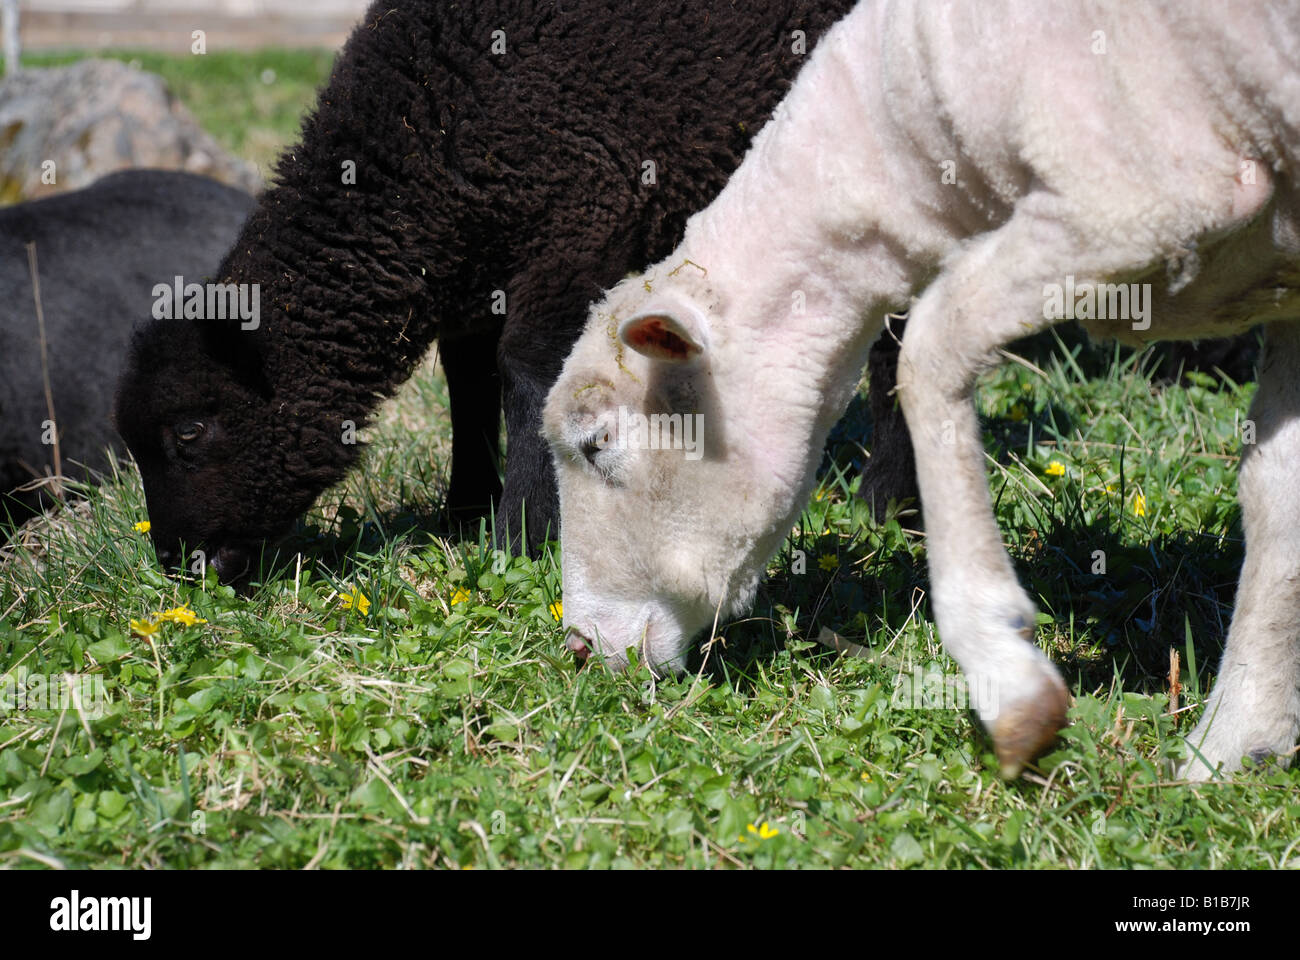 A white sheep and a black lamb eating grass - Stock Image